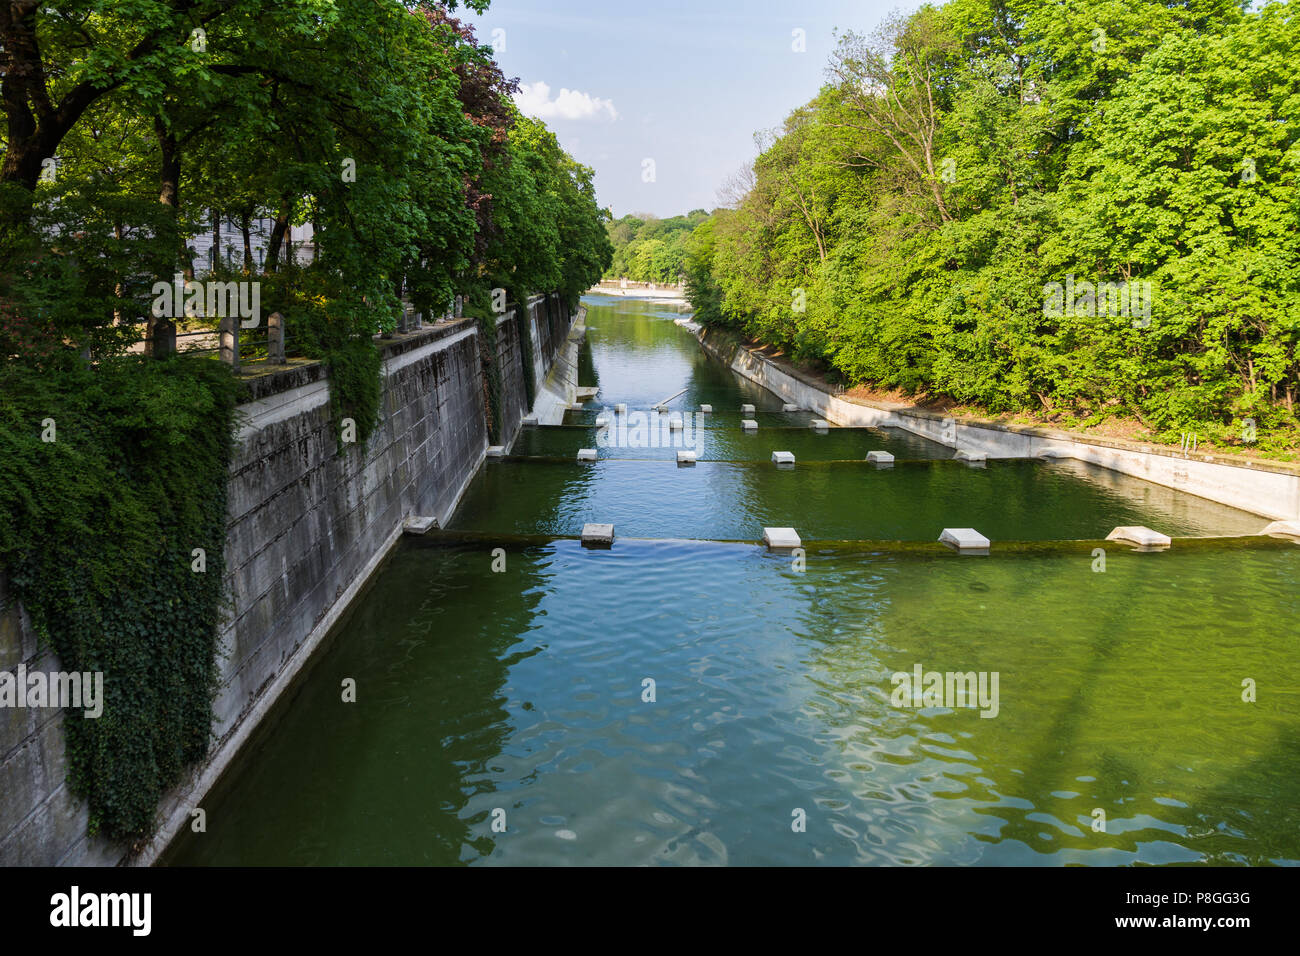 River architecture: cascades in a river regulated by humans - Stock Image